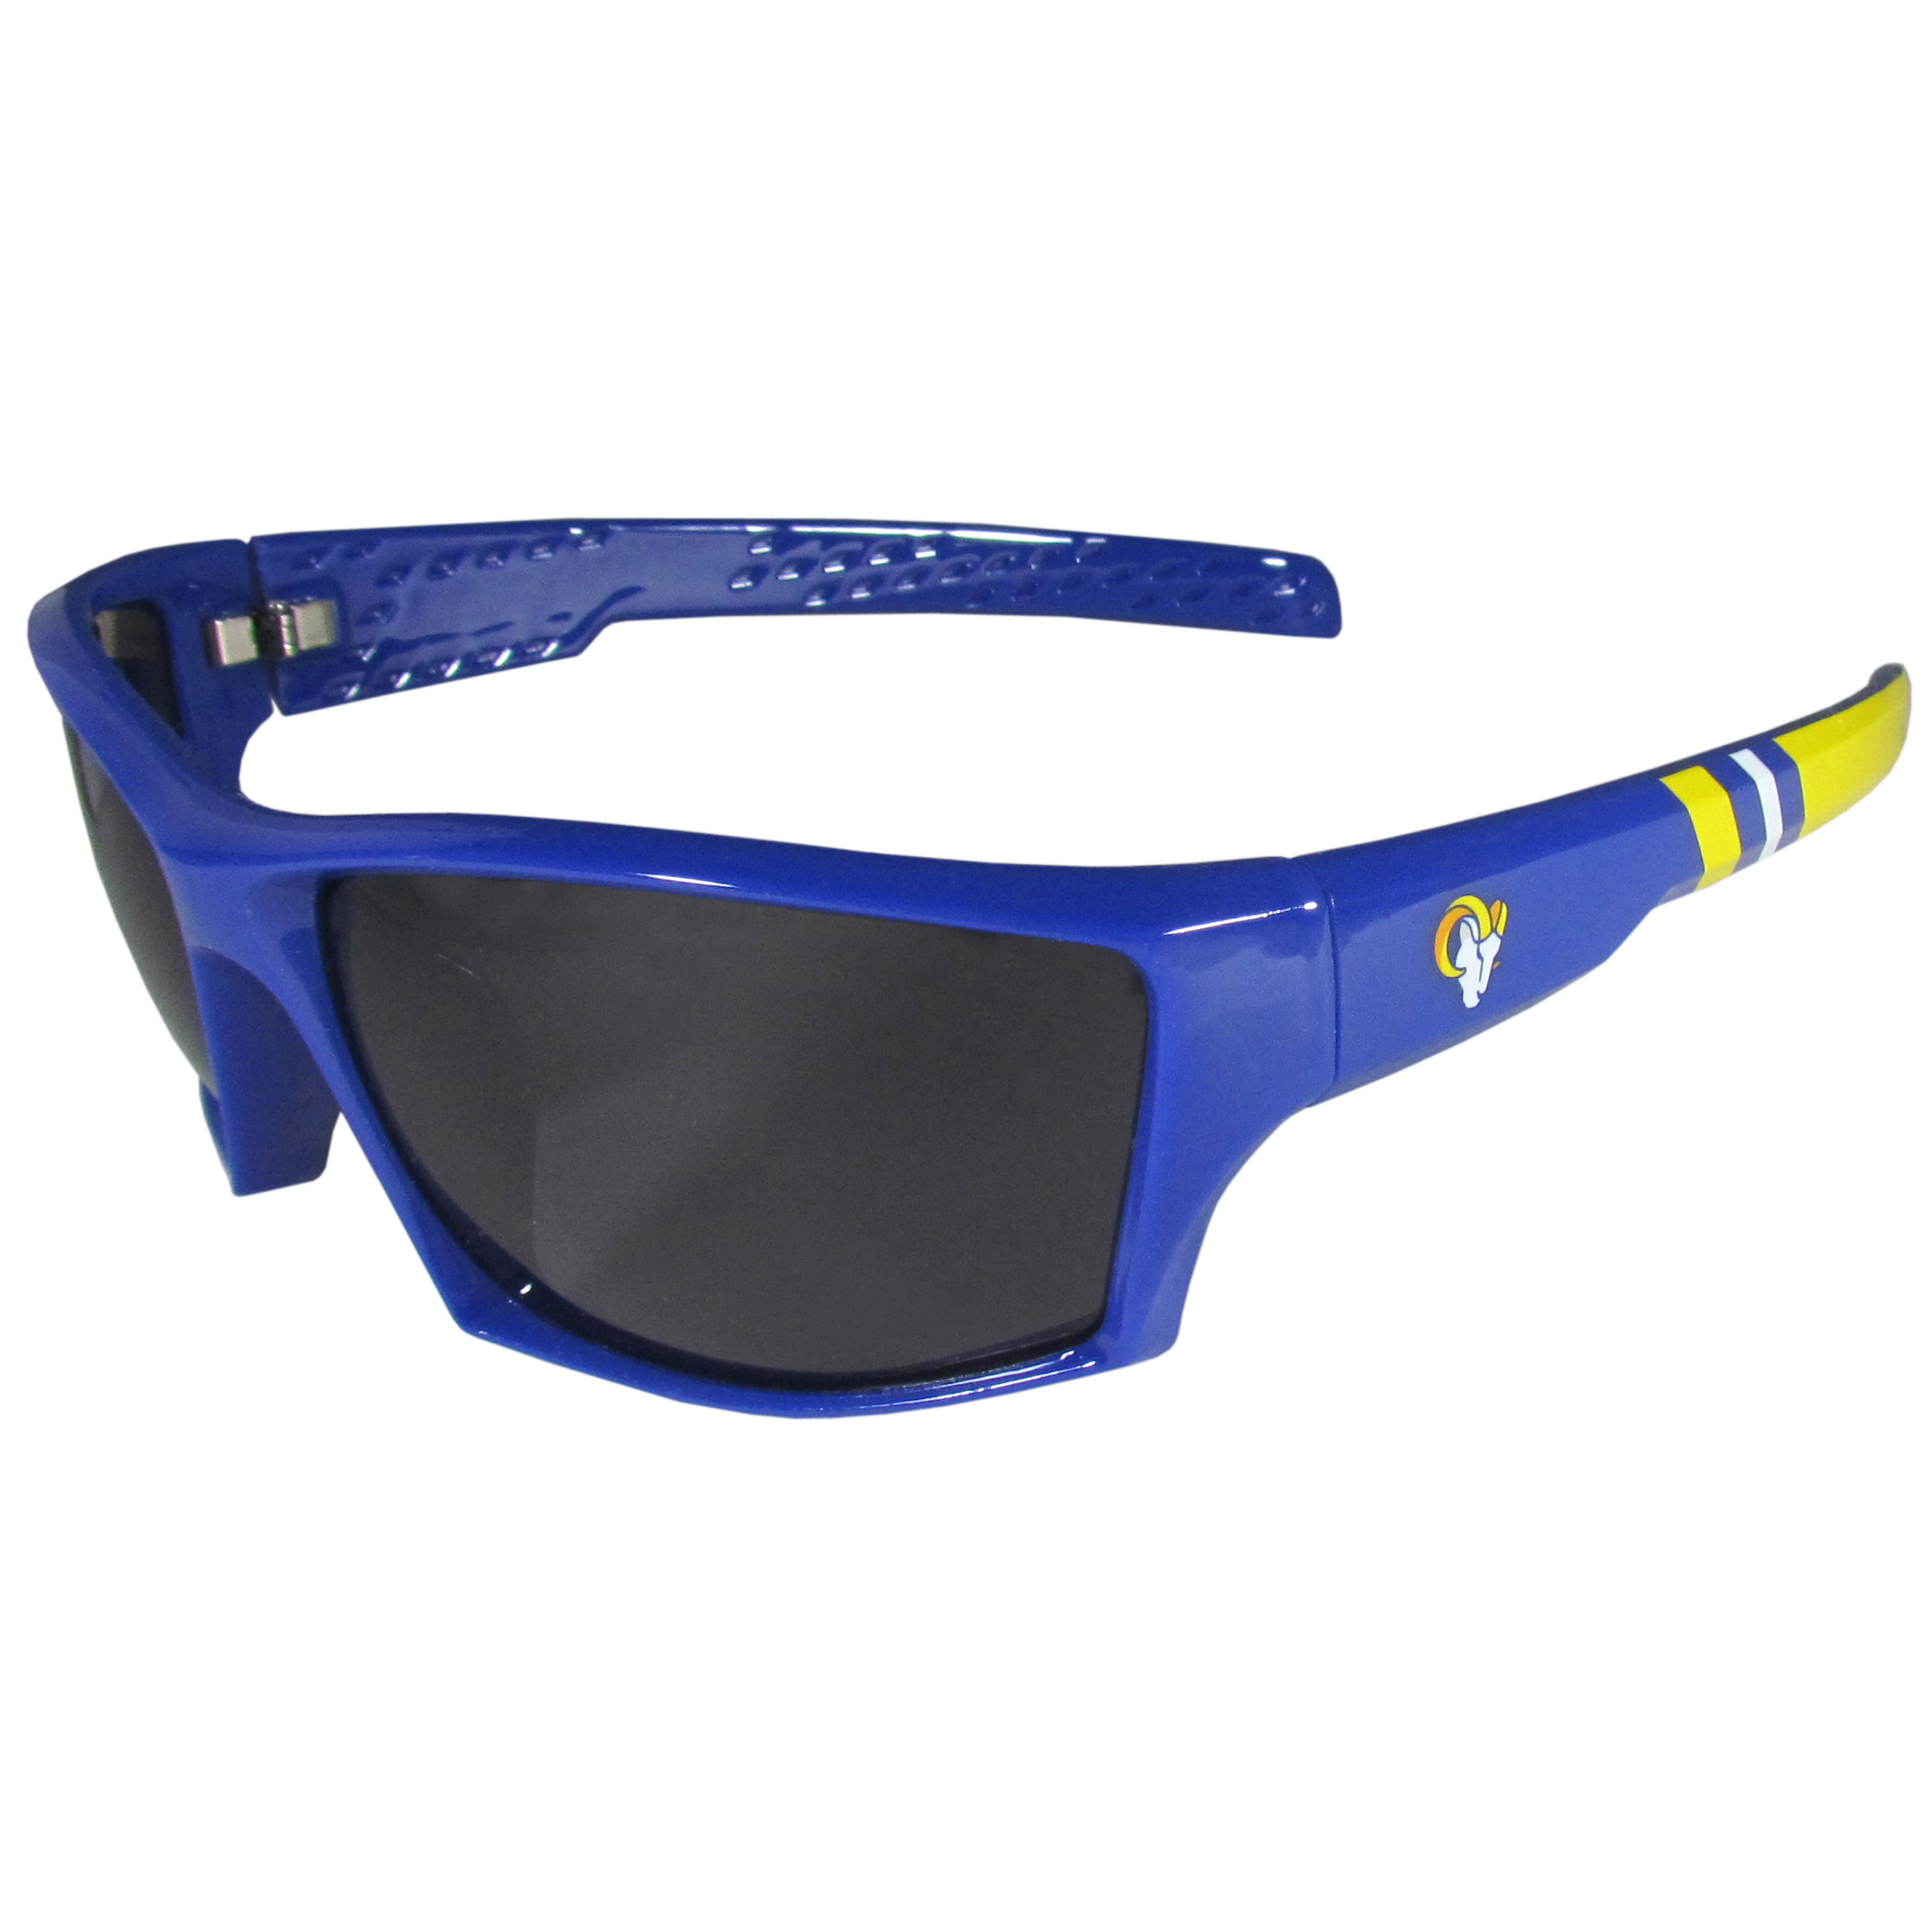 Los Angeles Rams Edge Wrap Sunglasses - Be an icon of edgy style while you're in the stadium cheering your Los Angeles Rams to victory with our polarized wrap sunglasses that feature 100% UVA/UVB rating for maximum UV protection. The light-weight frames are built to last with flex hinges for comfort and durability which make them perfect for driving or just lounging by the pool. The colorful rubber grips on the arms of these fashionable sunglasses make them perfect for someone with an active lifestyle. Whether you are hiking, fishing, boating, running on the beach, golfing or playing your favorite sport these designer frames will set you apart. Our edge wrap sunglasses are true quality eyewear at an affordable price. The wrap style frames come with team colored stripes and team logos so you can show off your die-hard team pride while protecting your eyes from those bright sun rays.